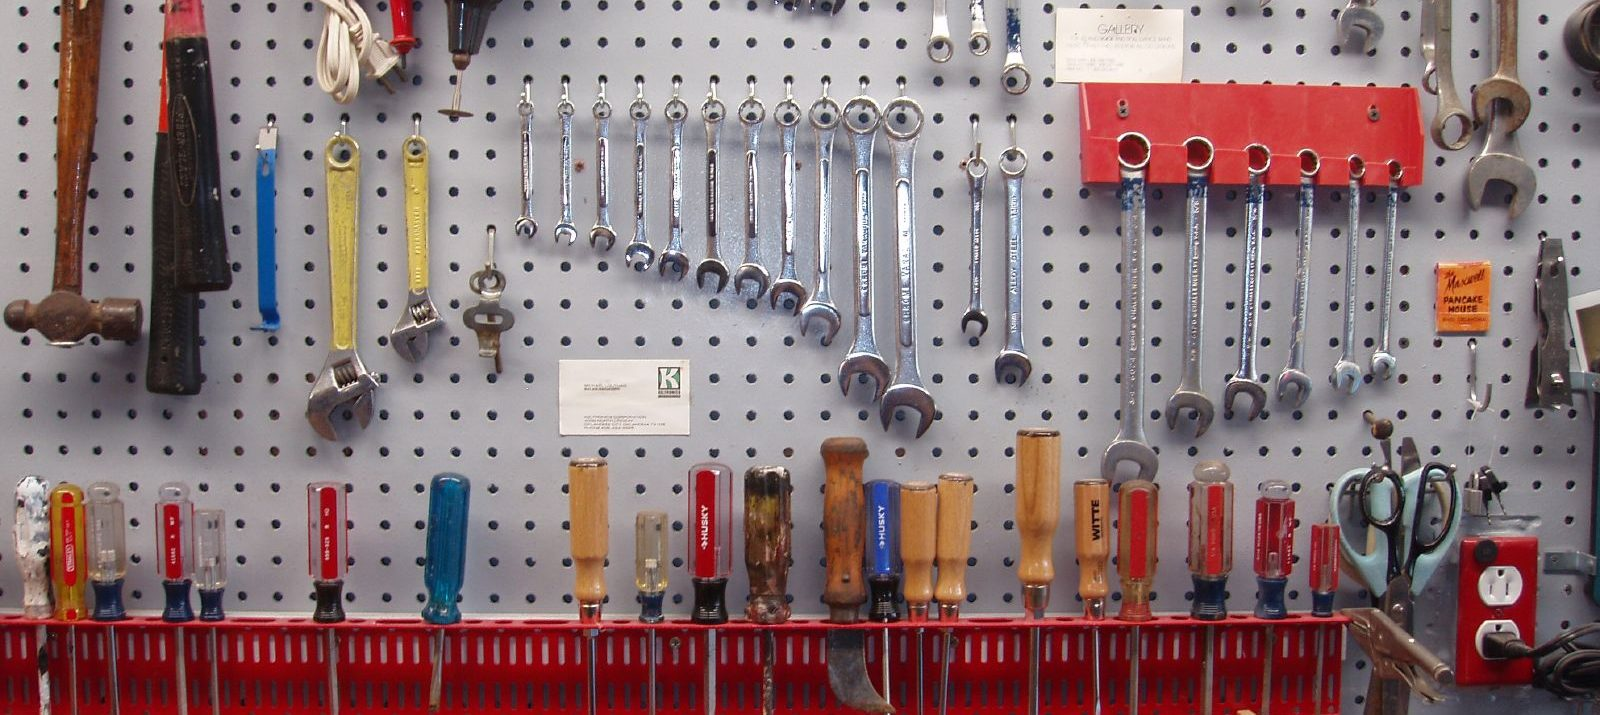 diy pegboard ideas for garage tools and storage